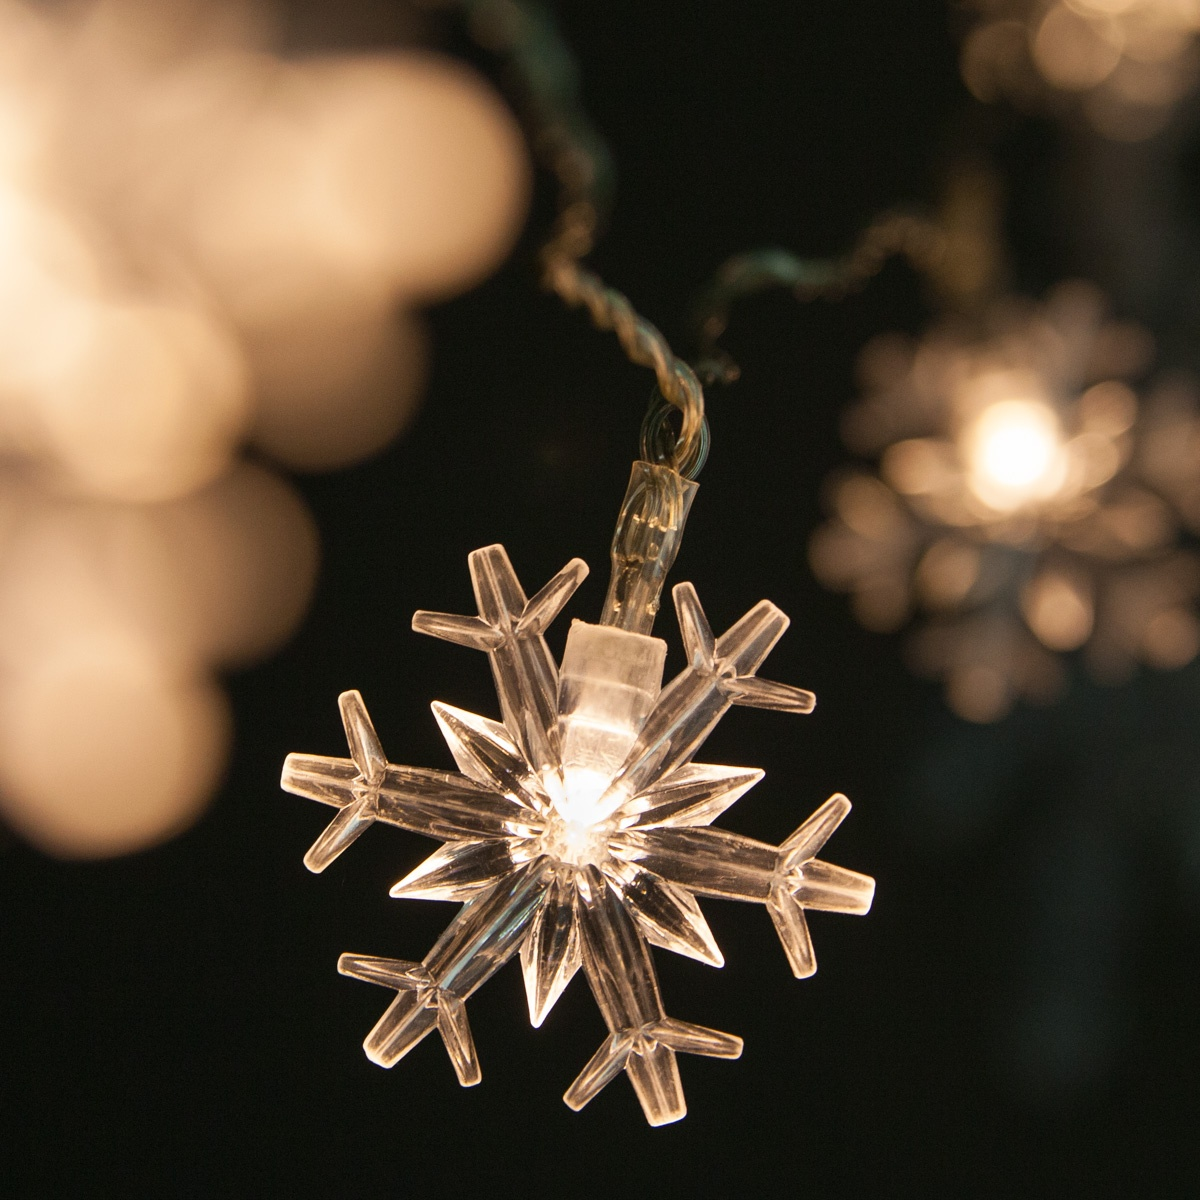 Outdoor String Lights For Trees Battery Operated Lights - Battery Operated Snowflake